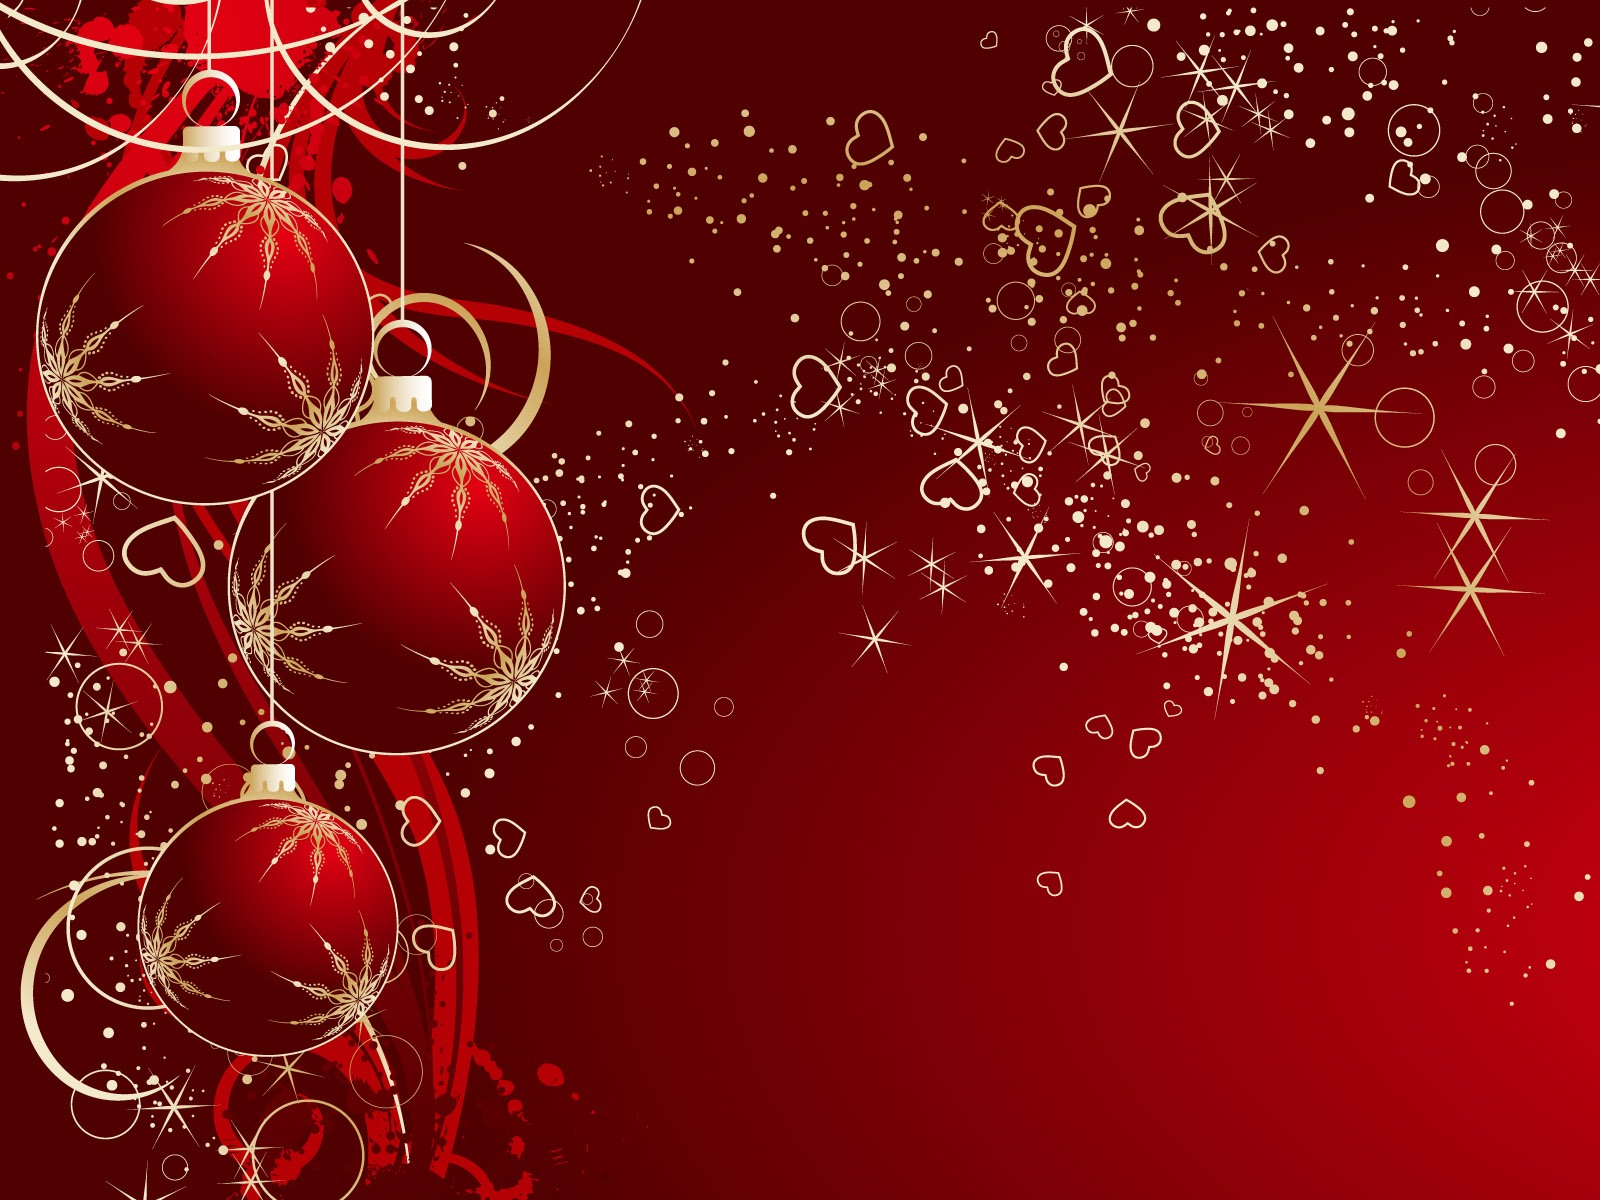 Christmas Desktop Backgrounds Graphics   wwwwallpapers in hdcom 1600x1200